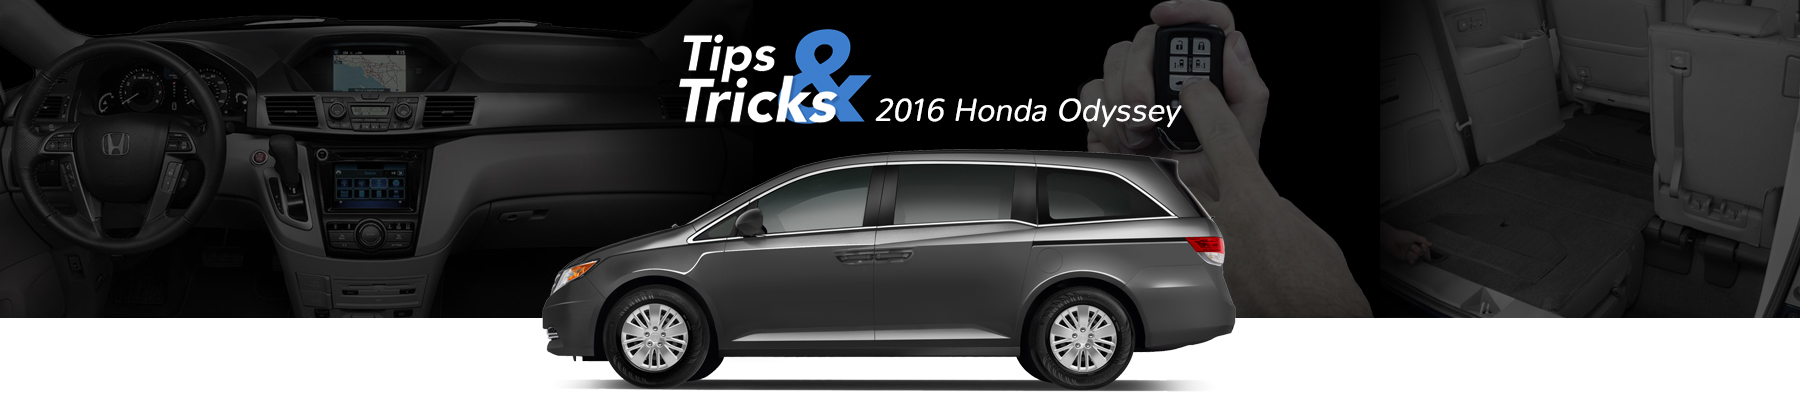 Honda Odyssey Tips And Tricks